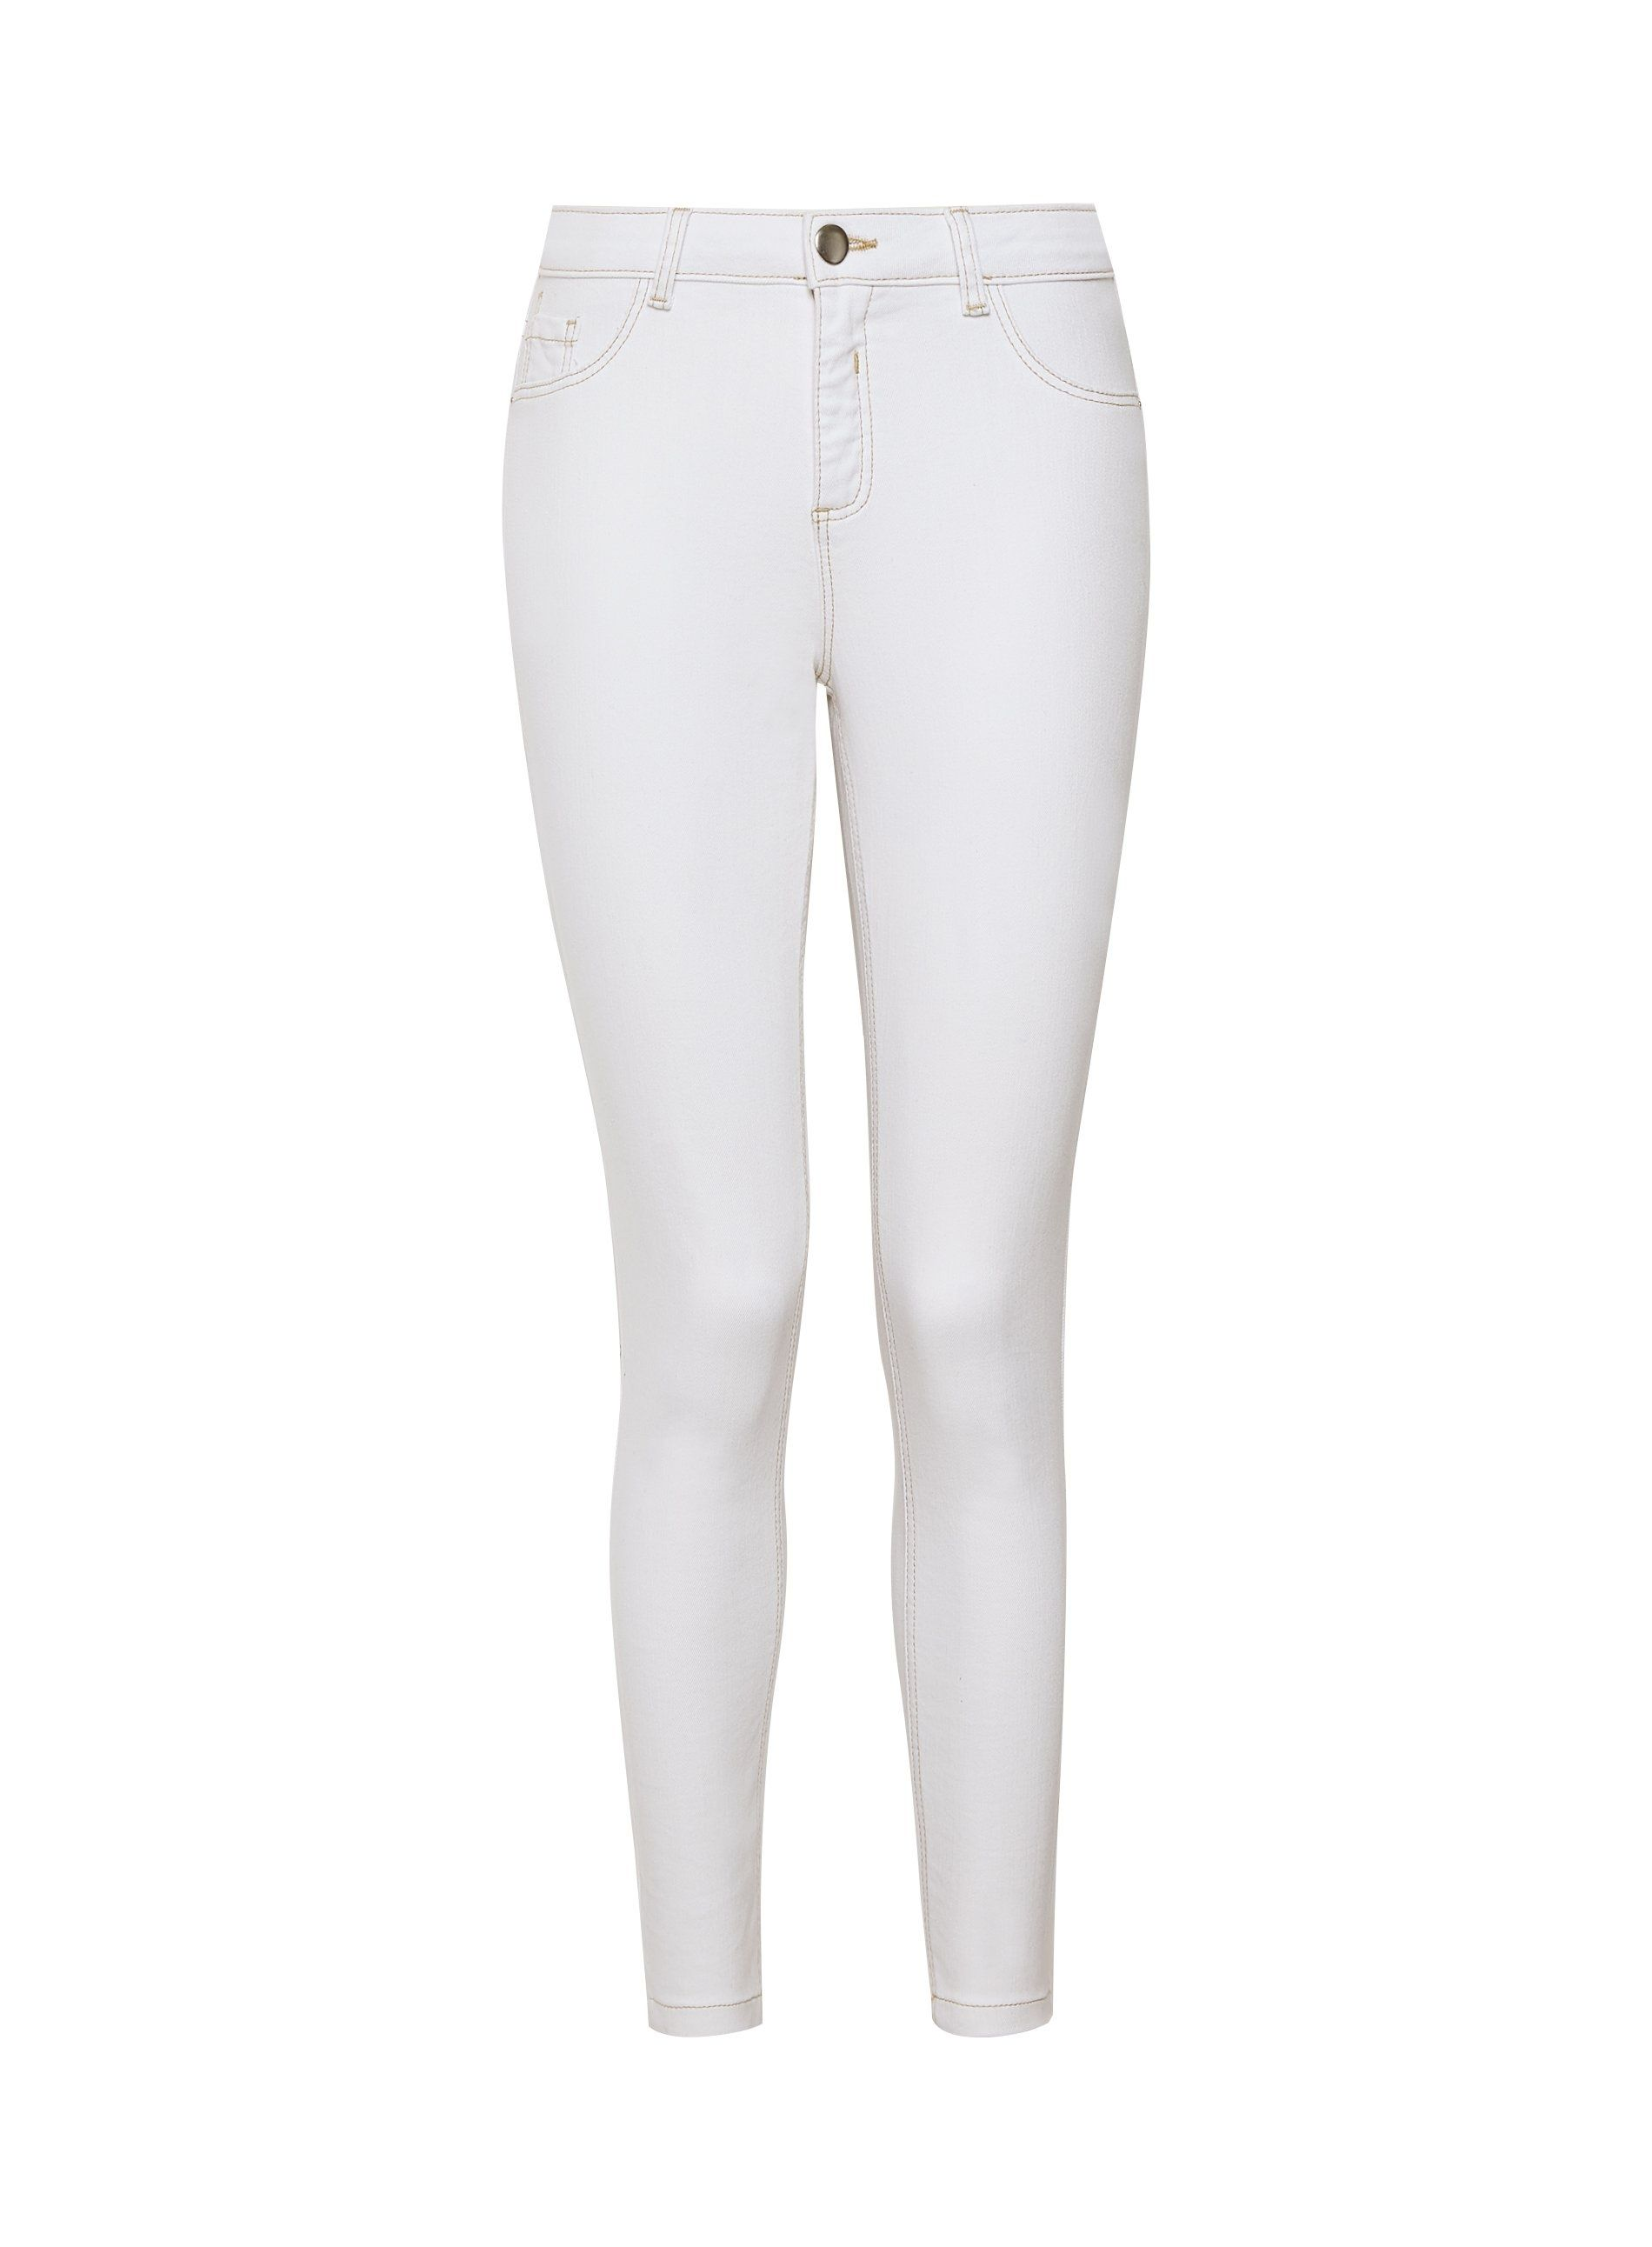 Dorothy Perkins Womens White Contrast Darcy Jeans Mid Rise Denim Trousers Pants